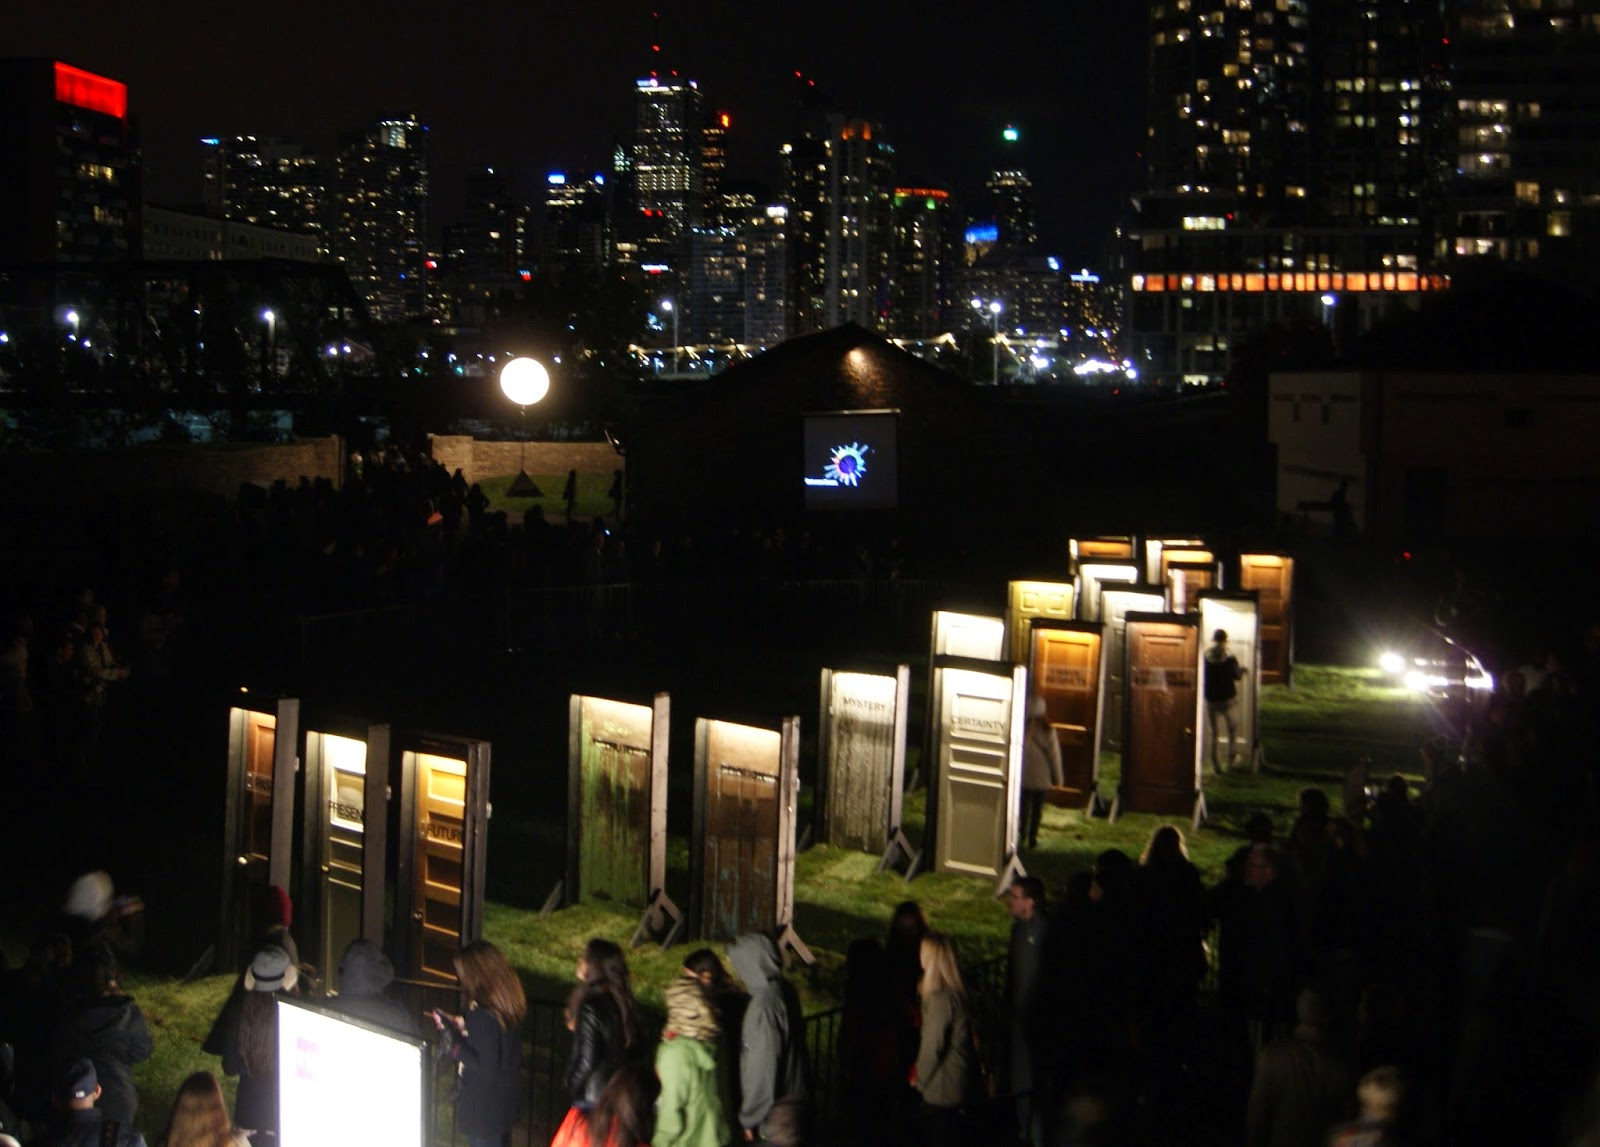 Nuit Blanche 2014: Between Doors, 2014 by Labsapce Studios at Fort York, Art, Artmatters, Culture, events, The Purple Scarf, Melanie.Ps, Ontario, Canada, Installations, Performances